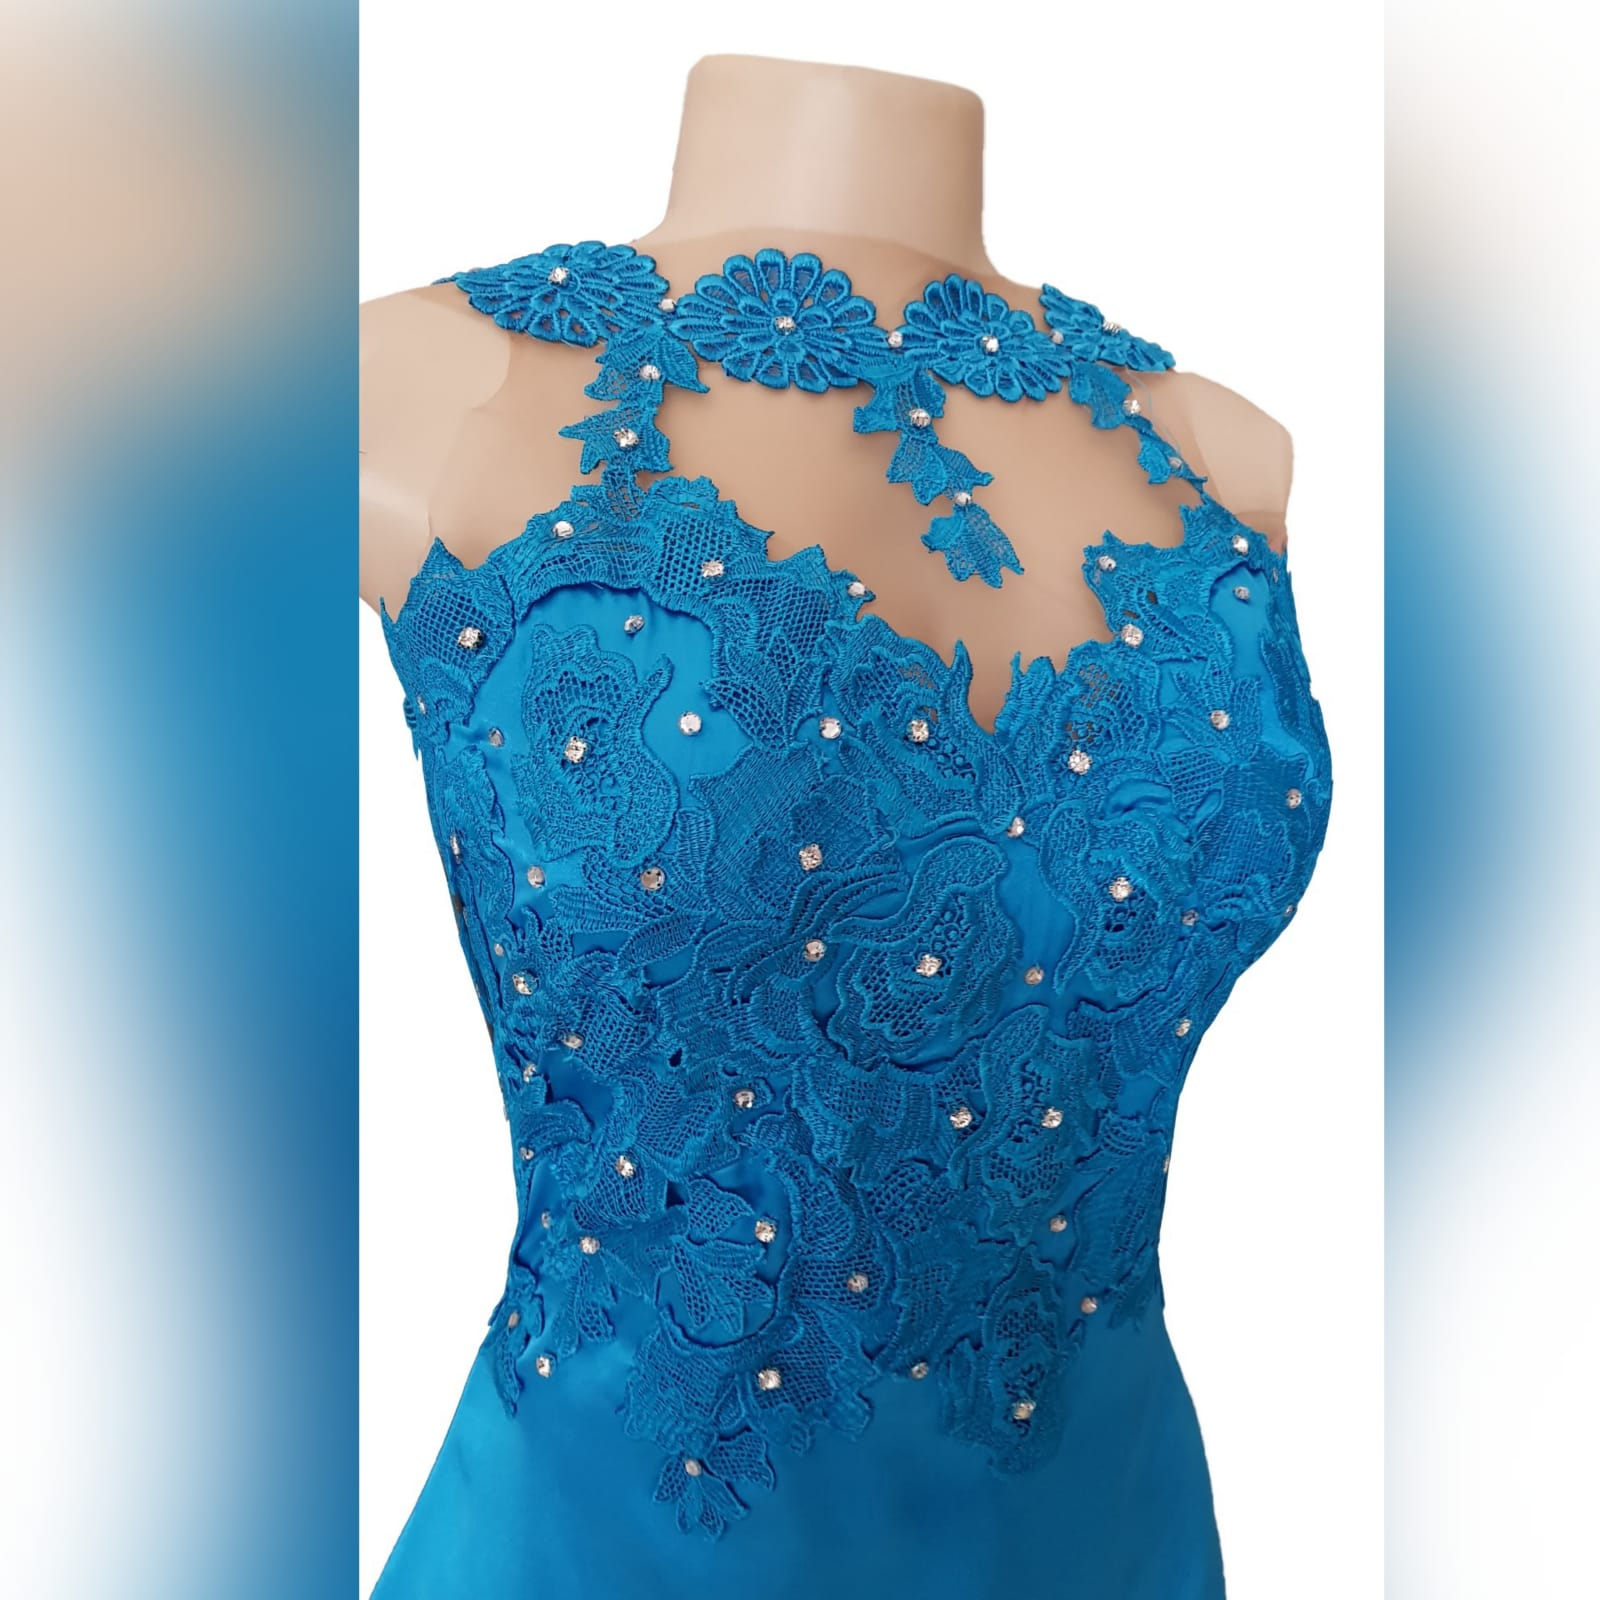 Blue long satin lace prom dress 3 blue long satin lace prom dress. Lace bodice with an illusion neckline and oval back opening with a slit and a train.